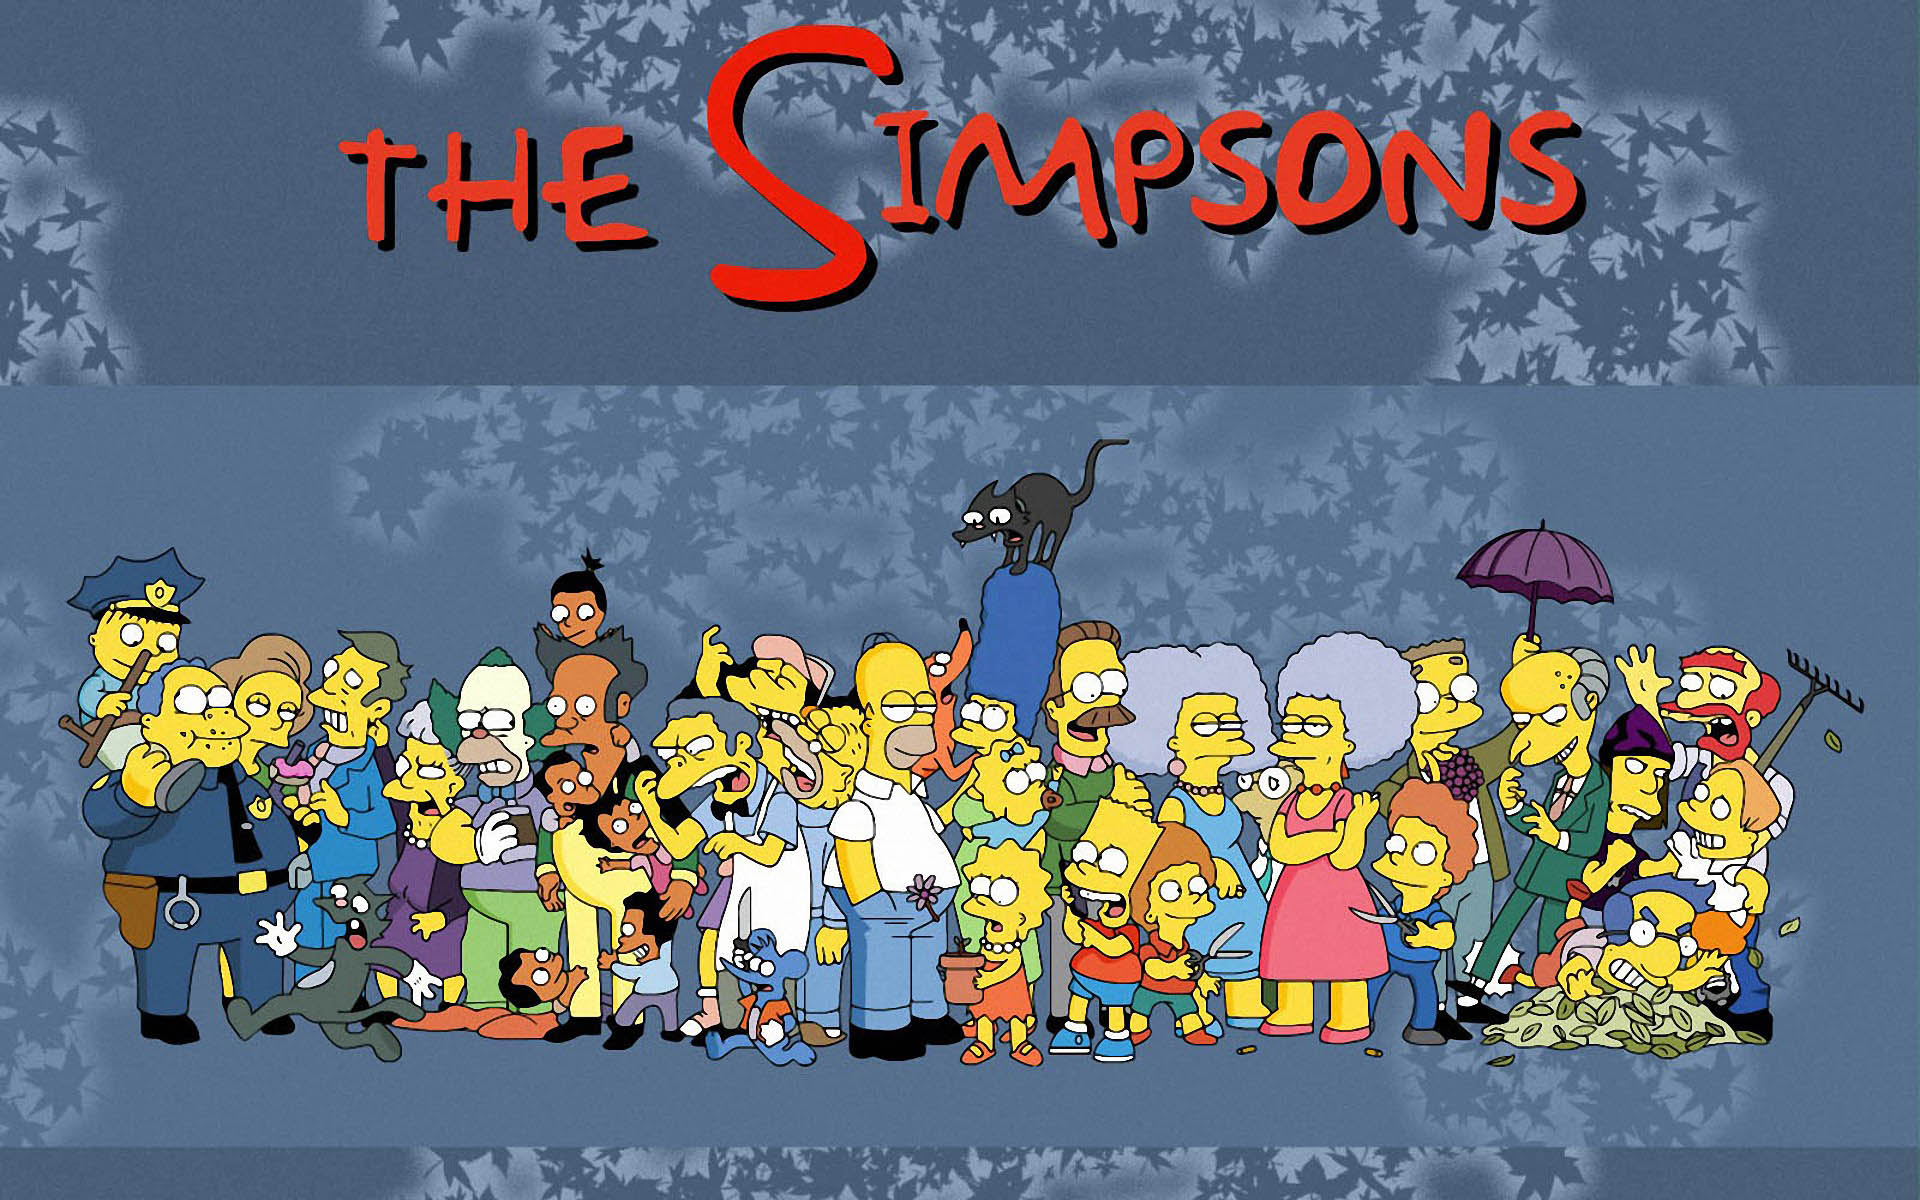 Cute Simpsons Wallpaper The Simpsons Widescreen Wallpaper High Definition High